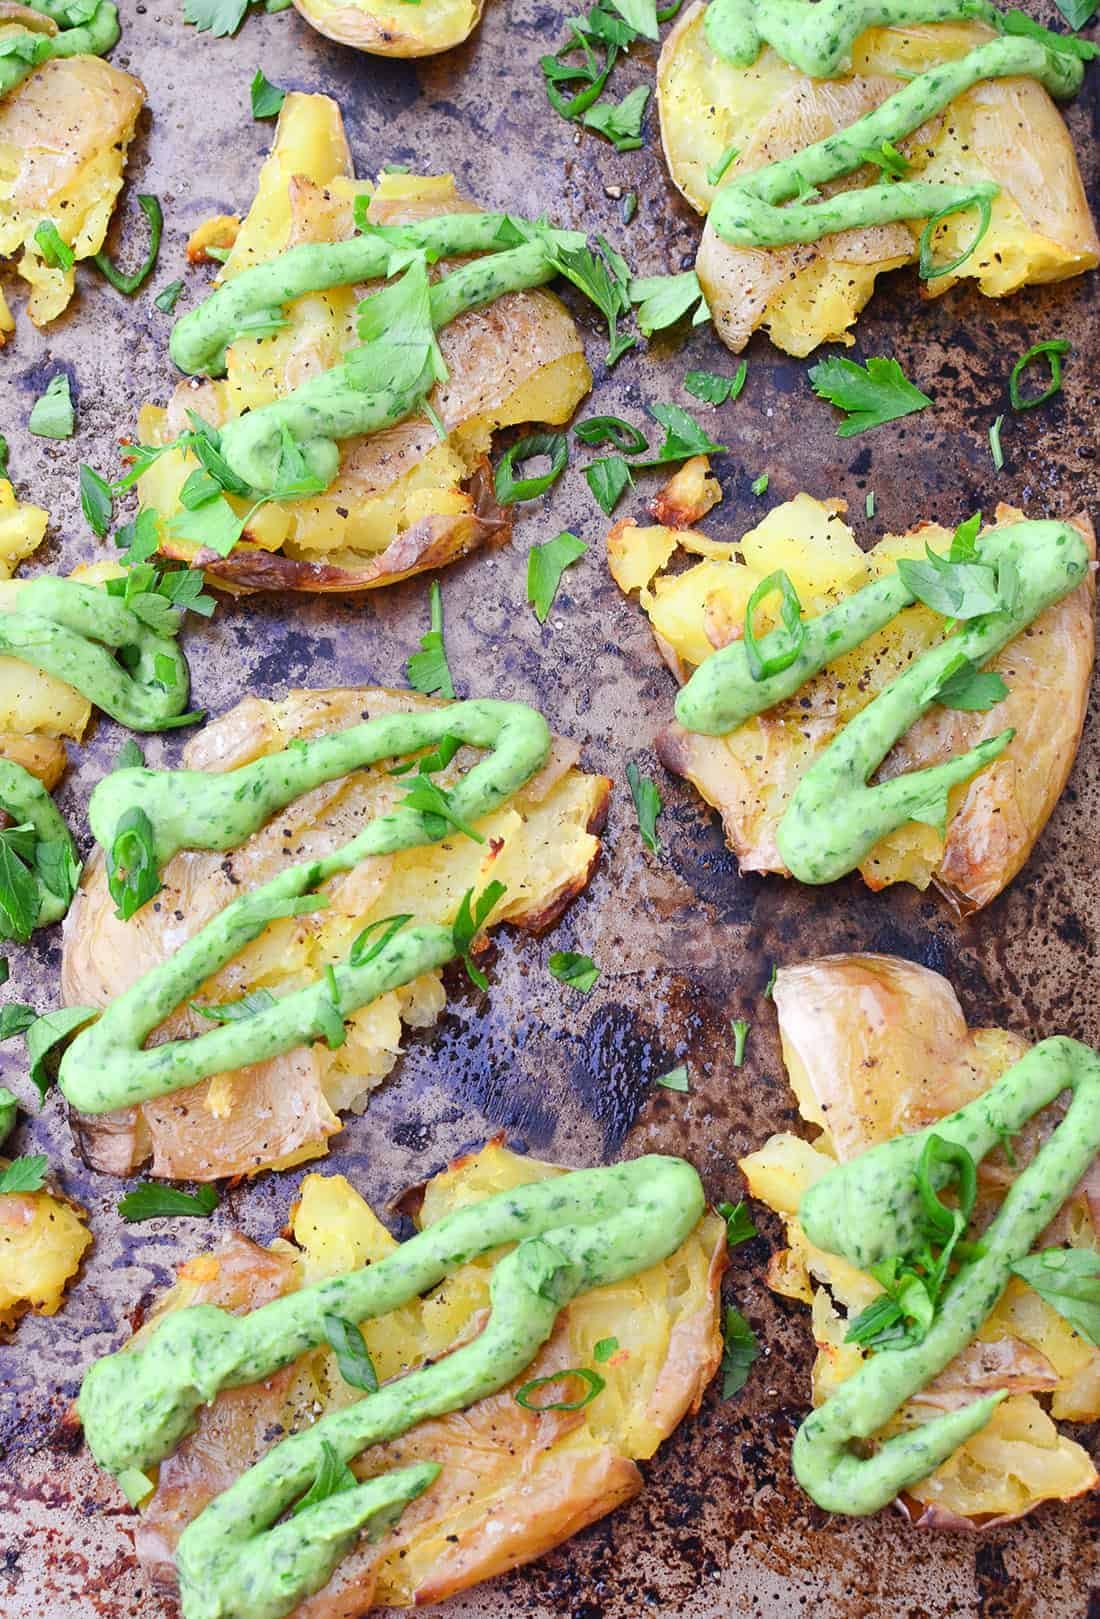 Crispy Smashed Potatoes with Creamy Chimichurri Sauce! You'll want to bring this to your next cookout or potluck! Vegan and Gluten-Free | www.delishknowledge.com